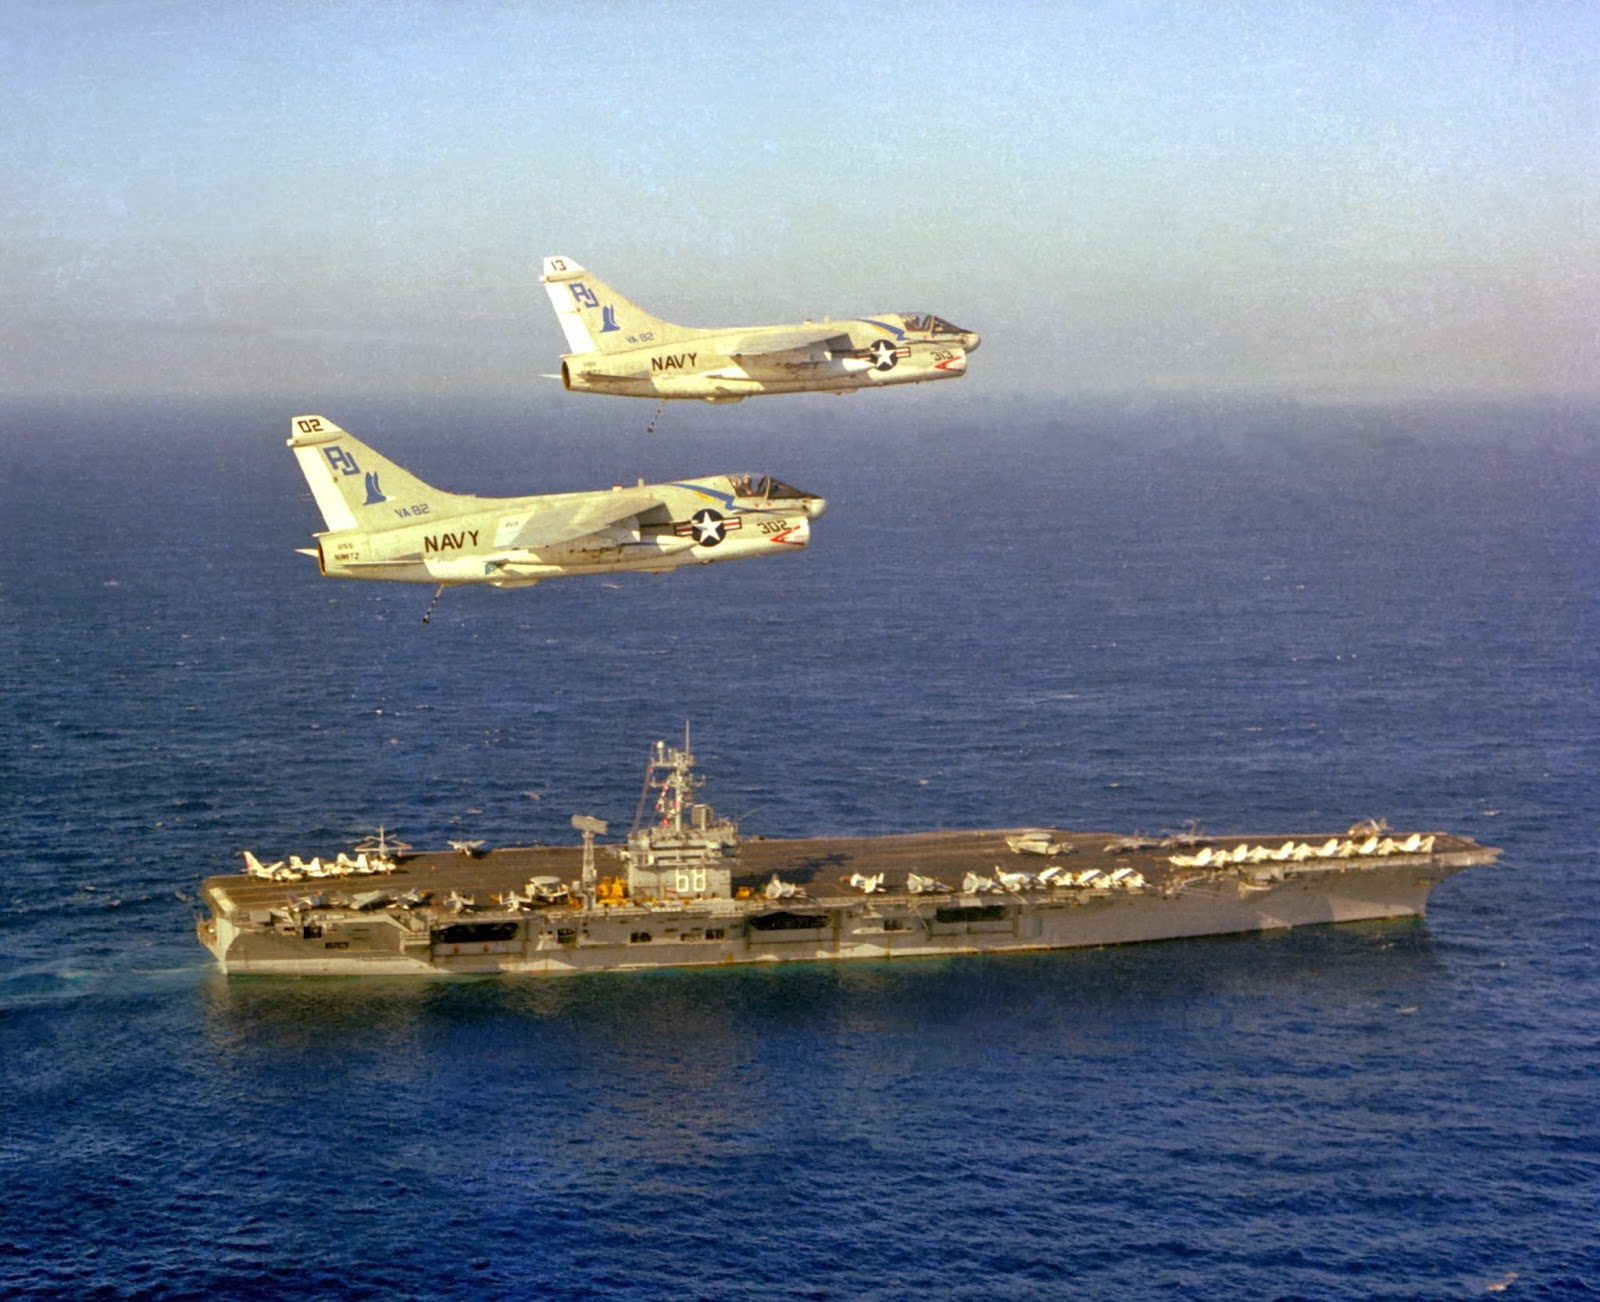 VA-82 Marauders flying alongside USS Nimitz CVN 68... too cool huh!